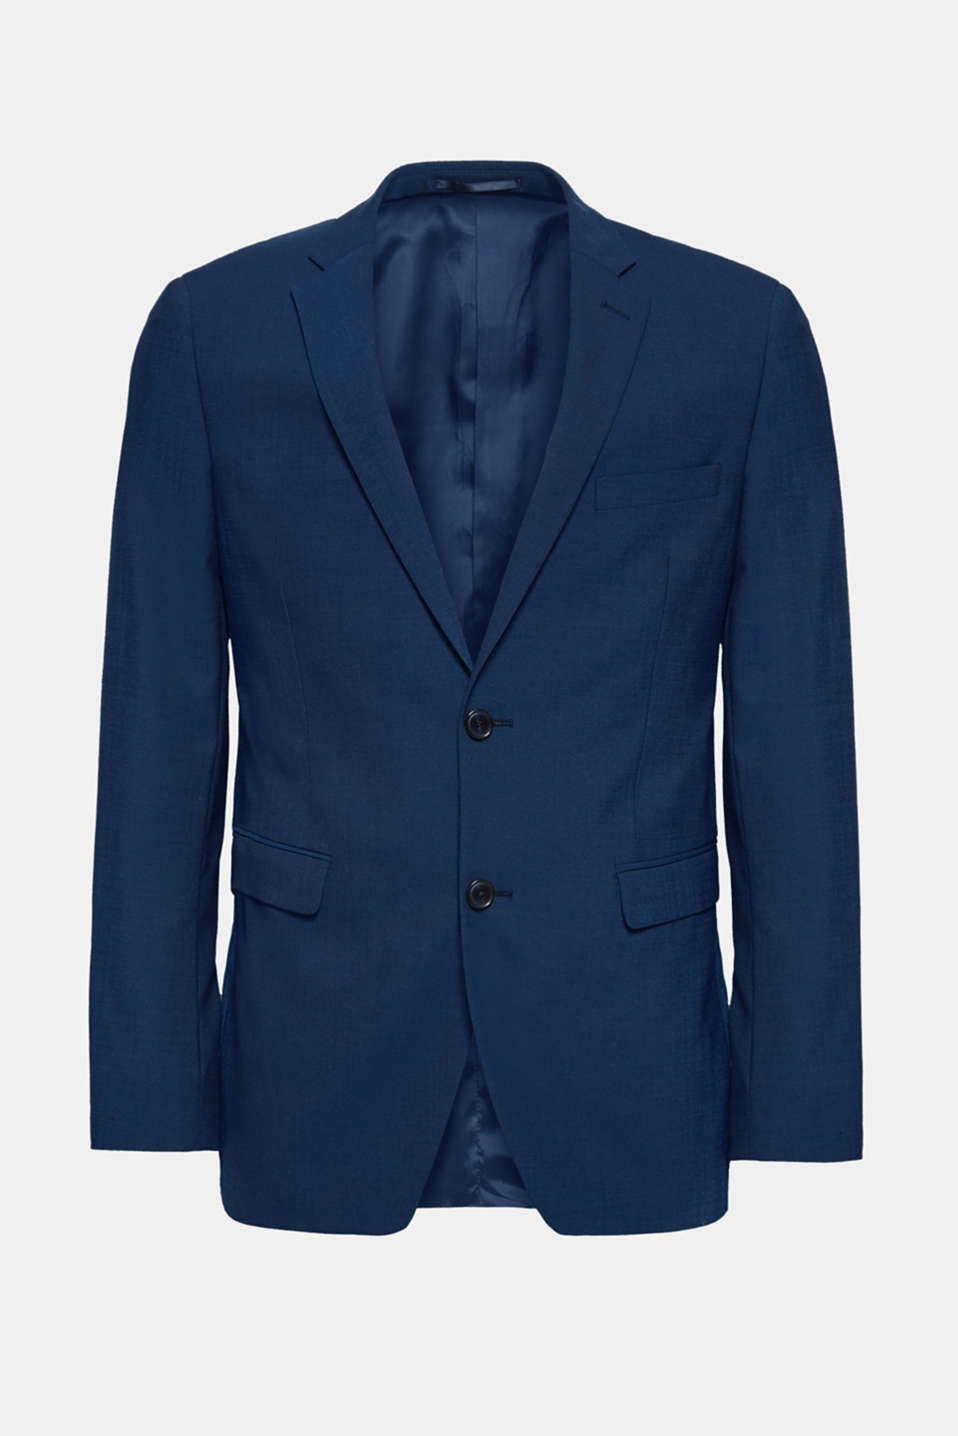 CLASSIC BLUE mix + match: Tailored jacket with wool, NAVY, detail image number 6